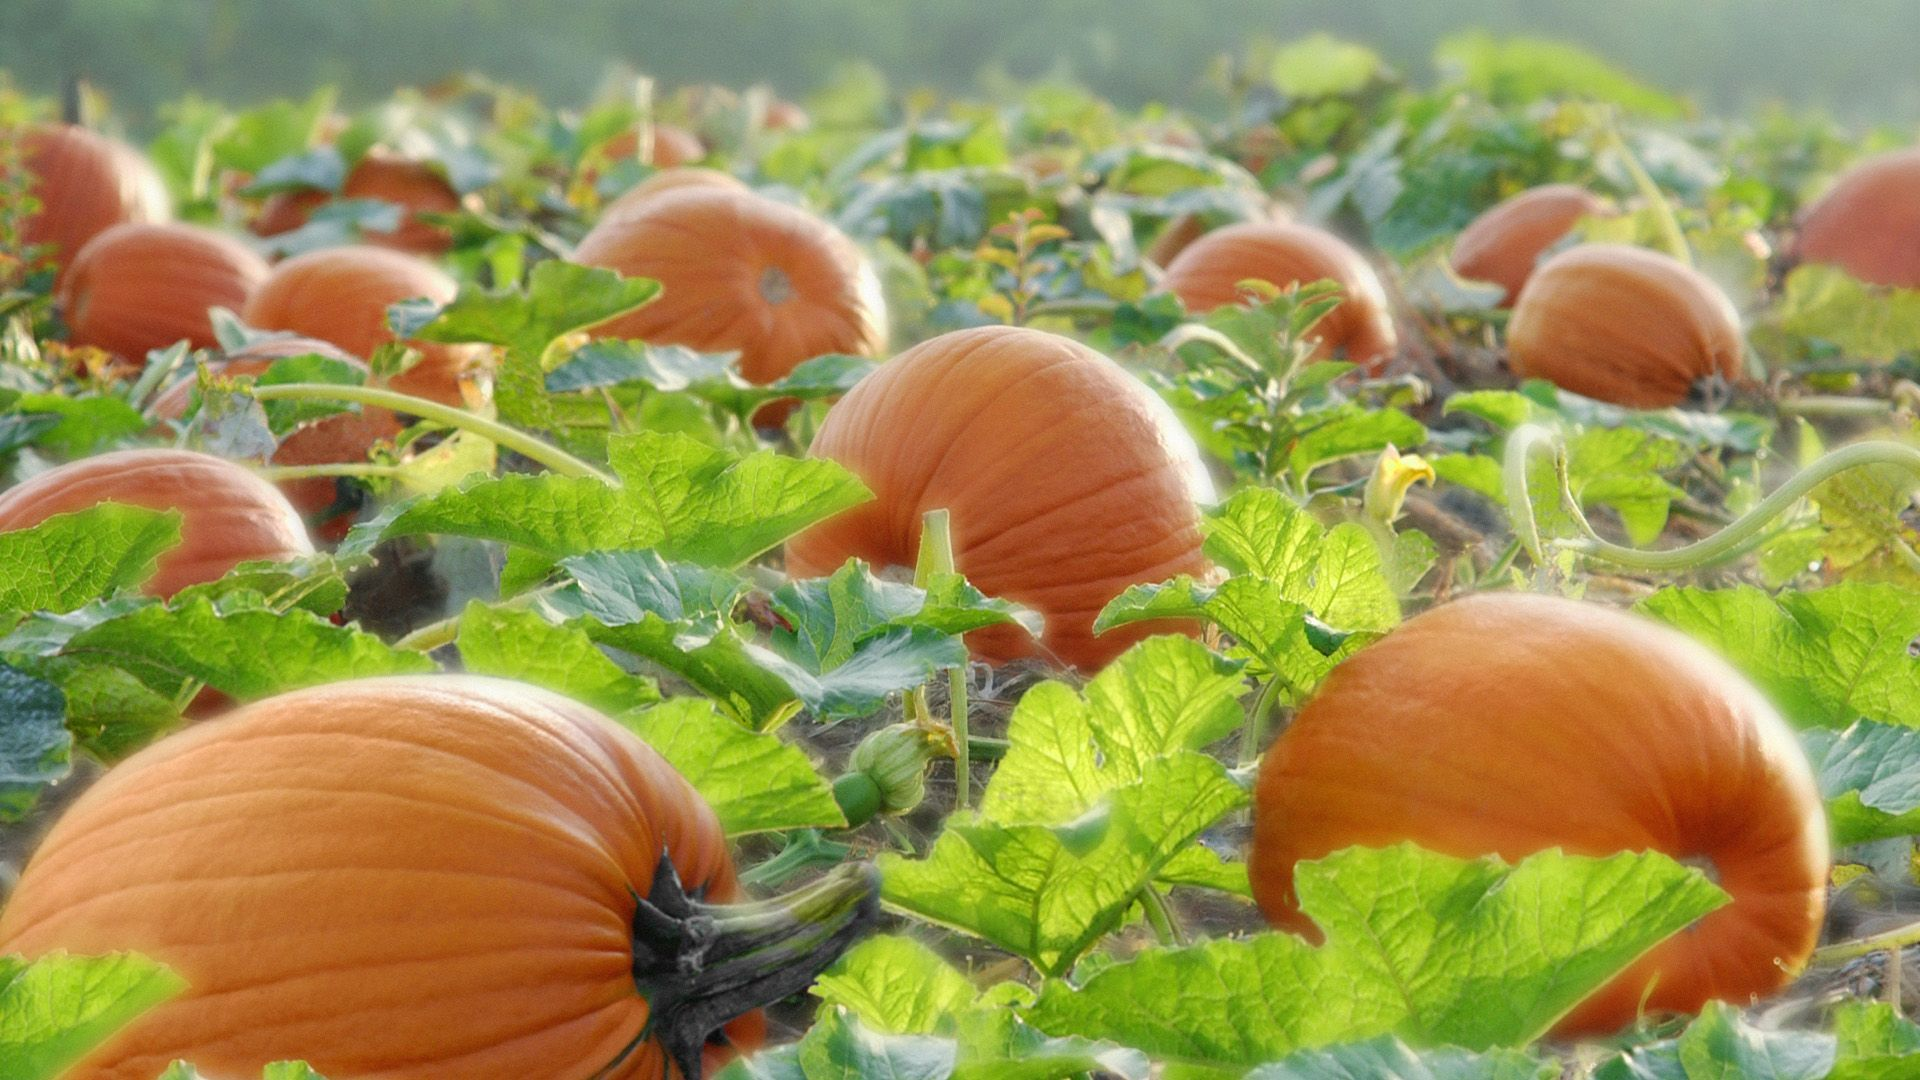 Fall Farm Desktop Wallpaper Pumpkin Wallpapers Hd Pixelstalk Net